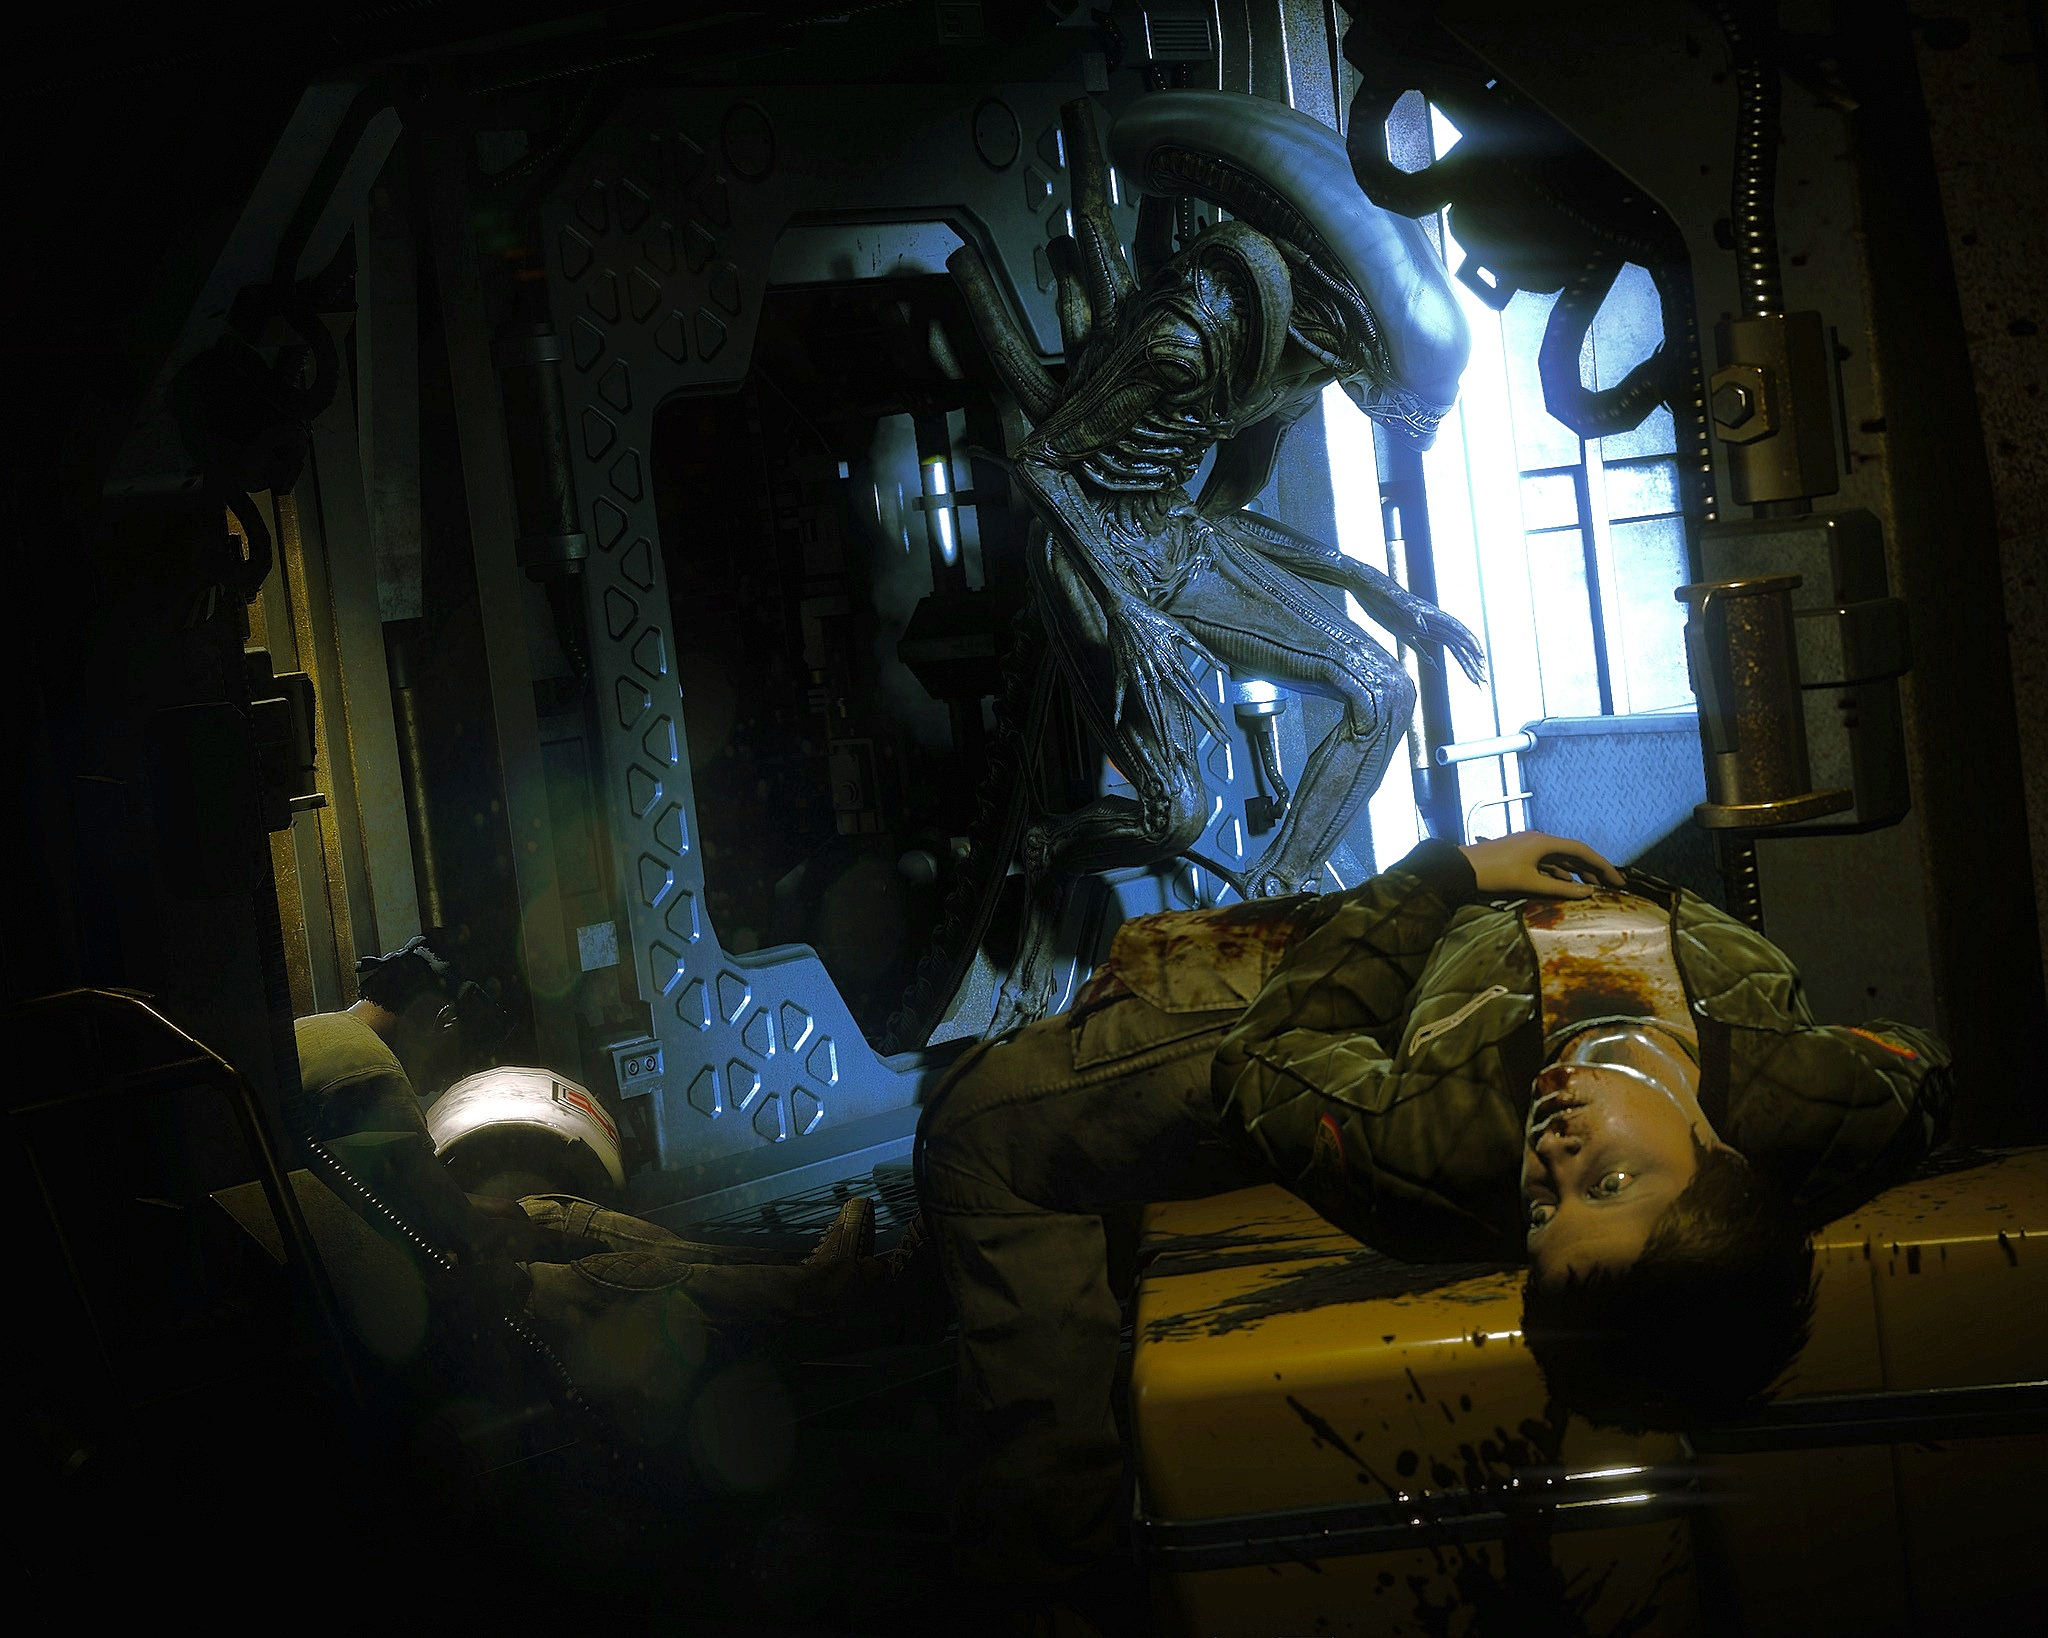 56УВРВ (2).jpg - Alien: Isolation